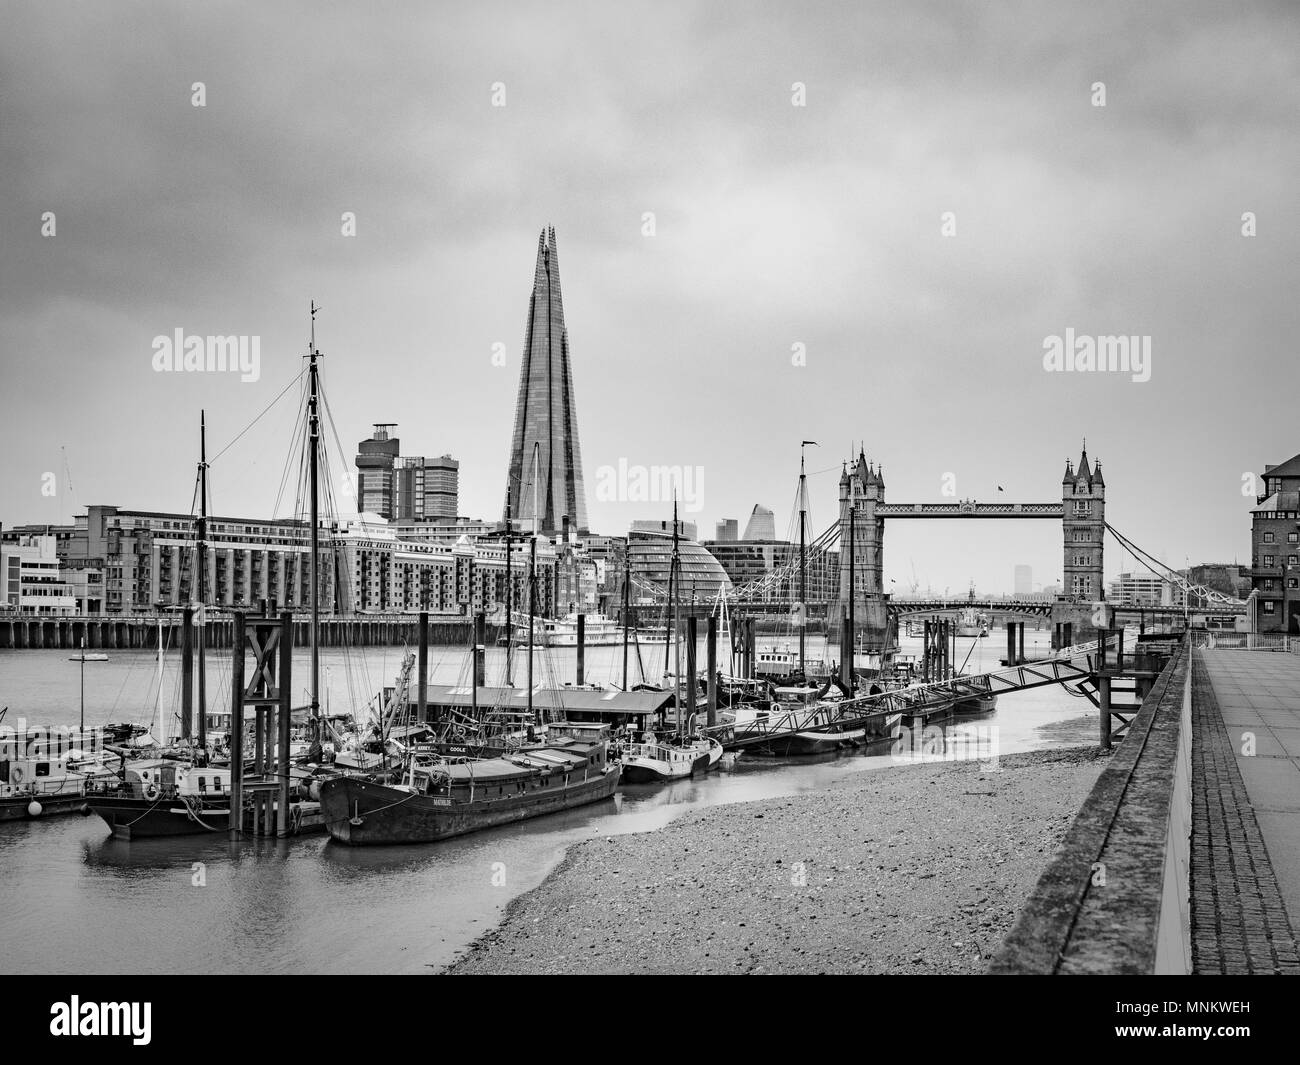 River Thames, boats, Tower Bridge and the Shard from the North bank of the river, London, UK. - Stock Image